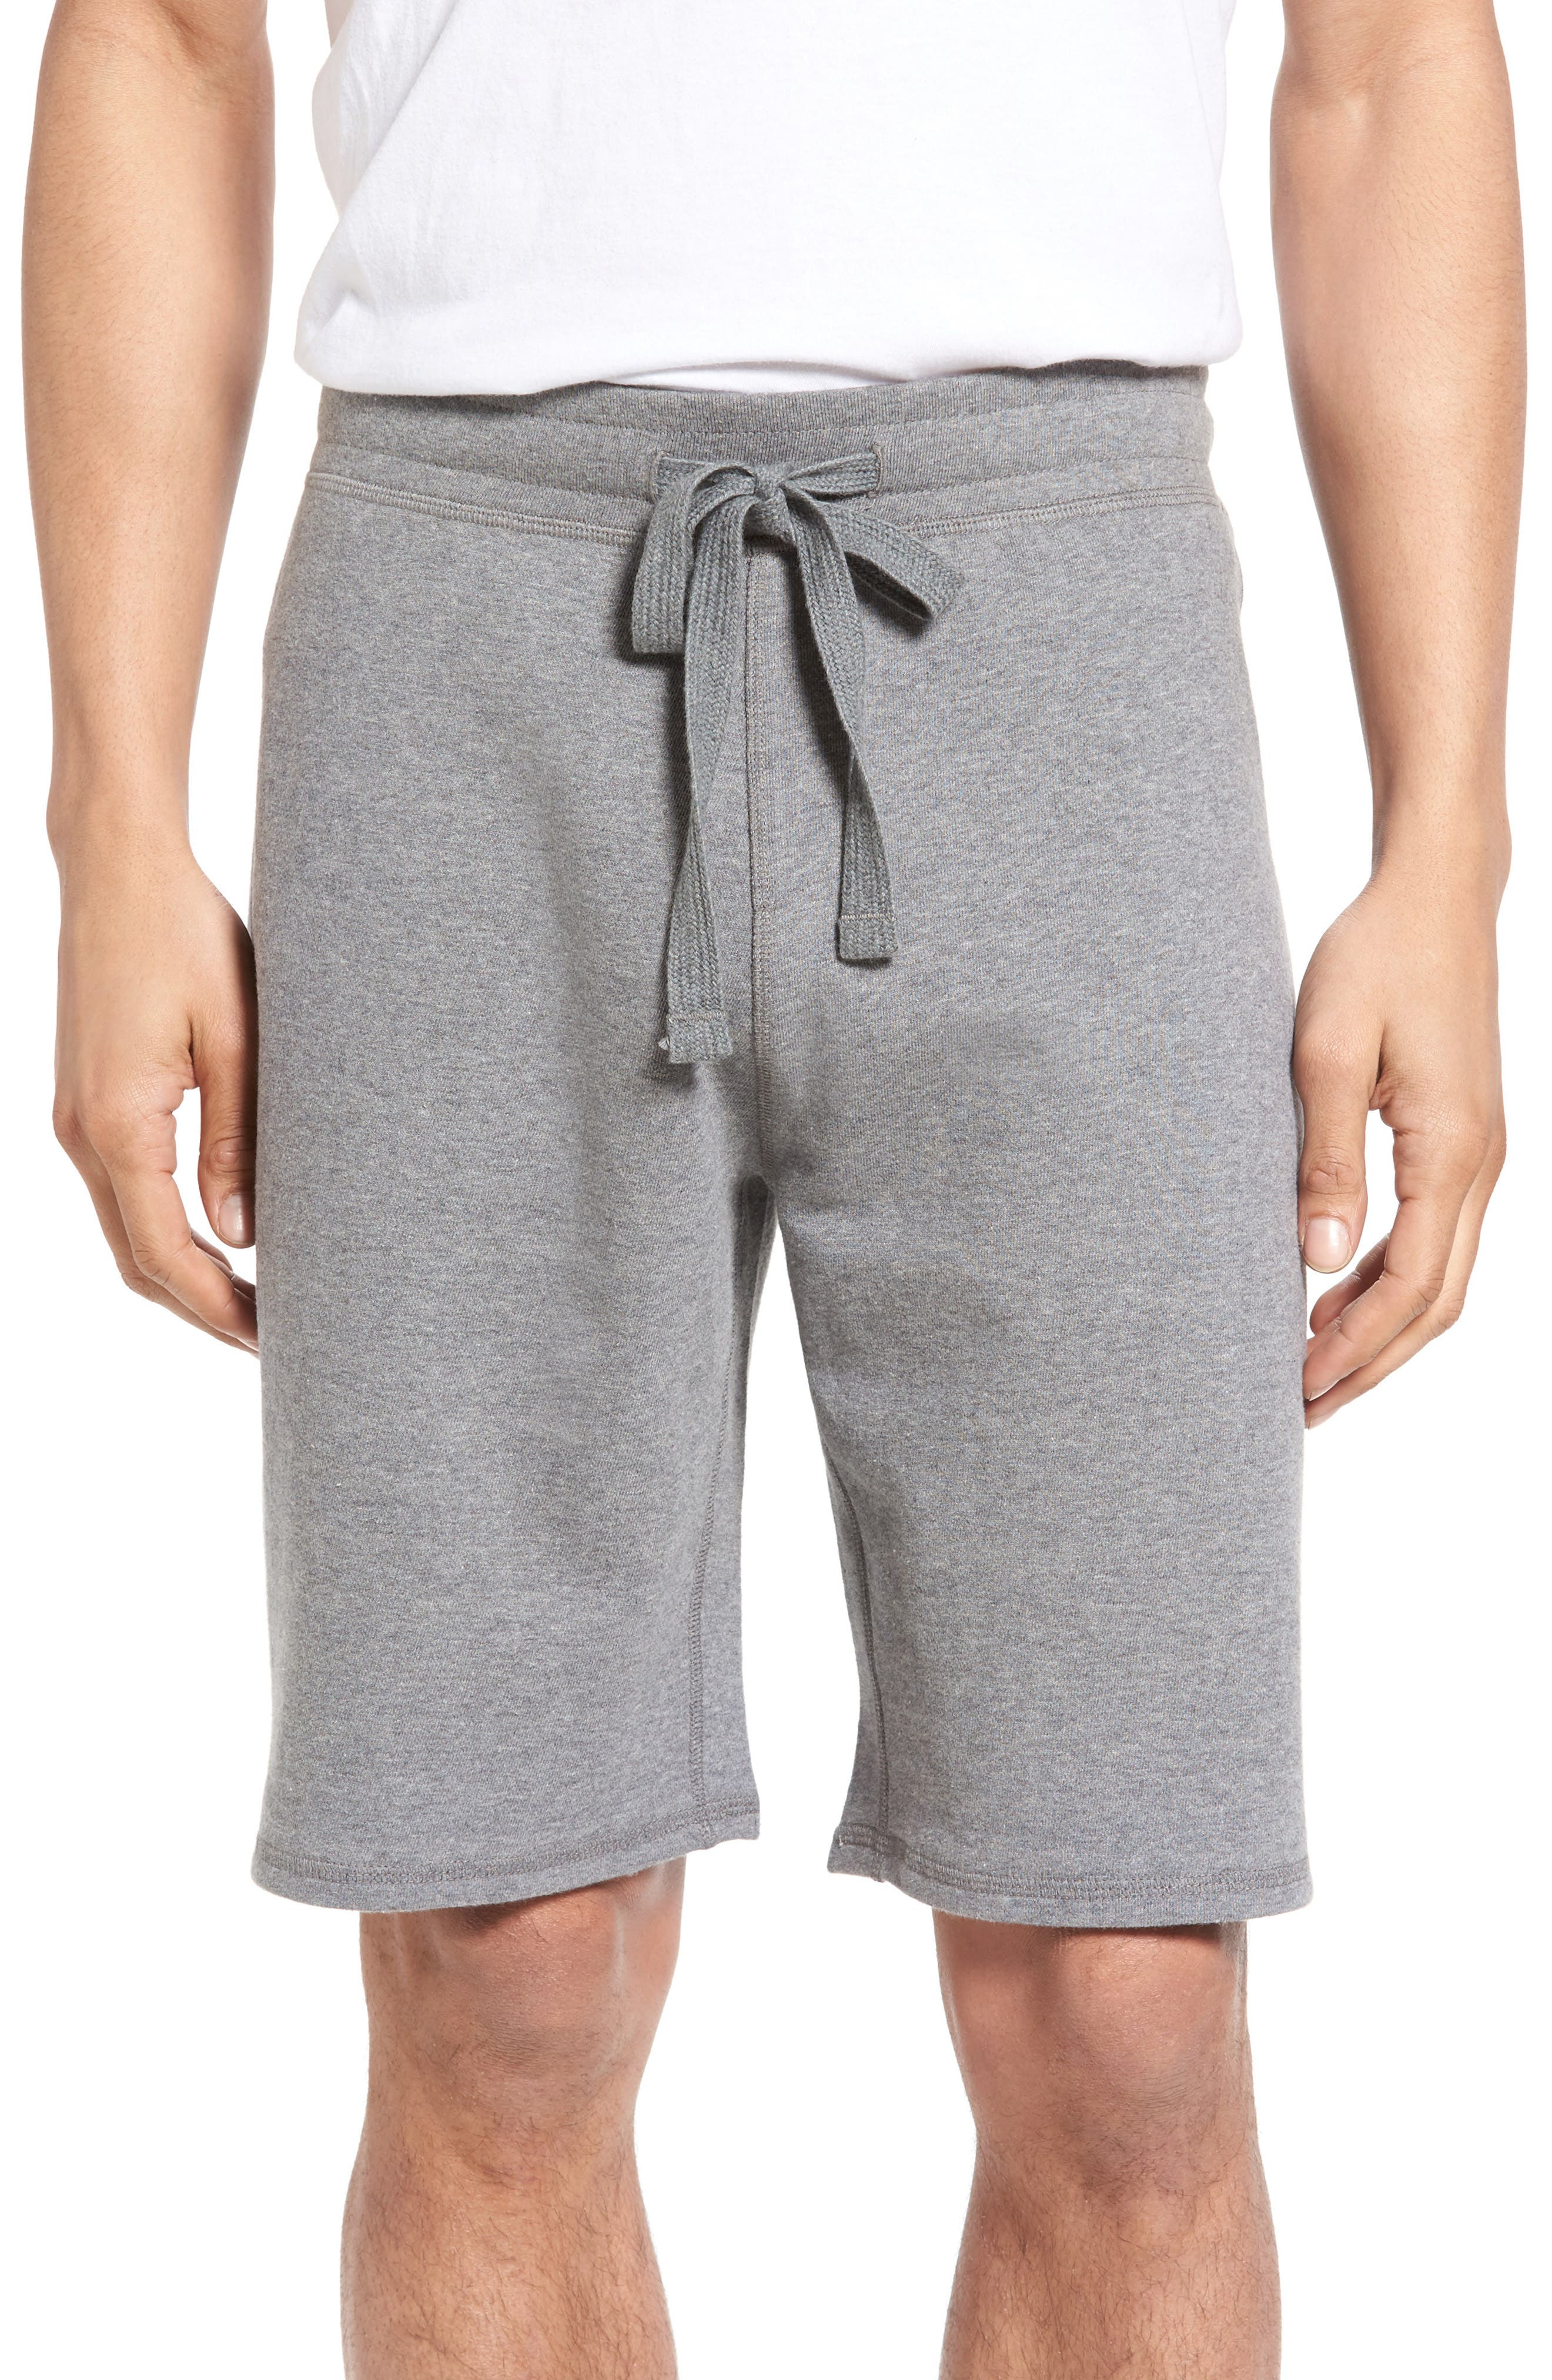 Tailor Vintage Reversible French Terry Sweat Shorts